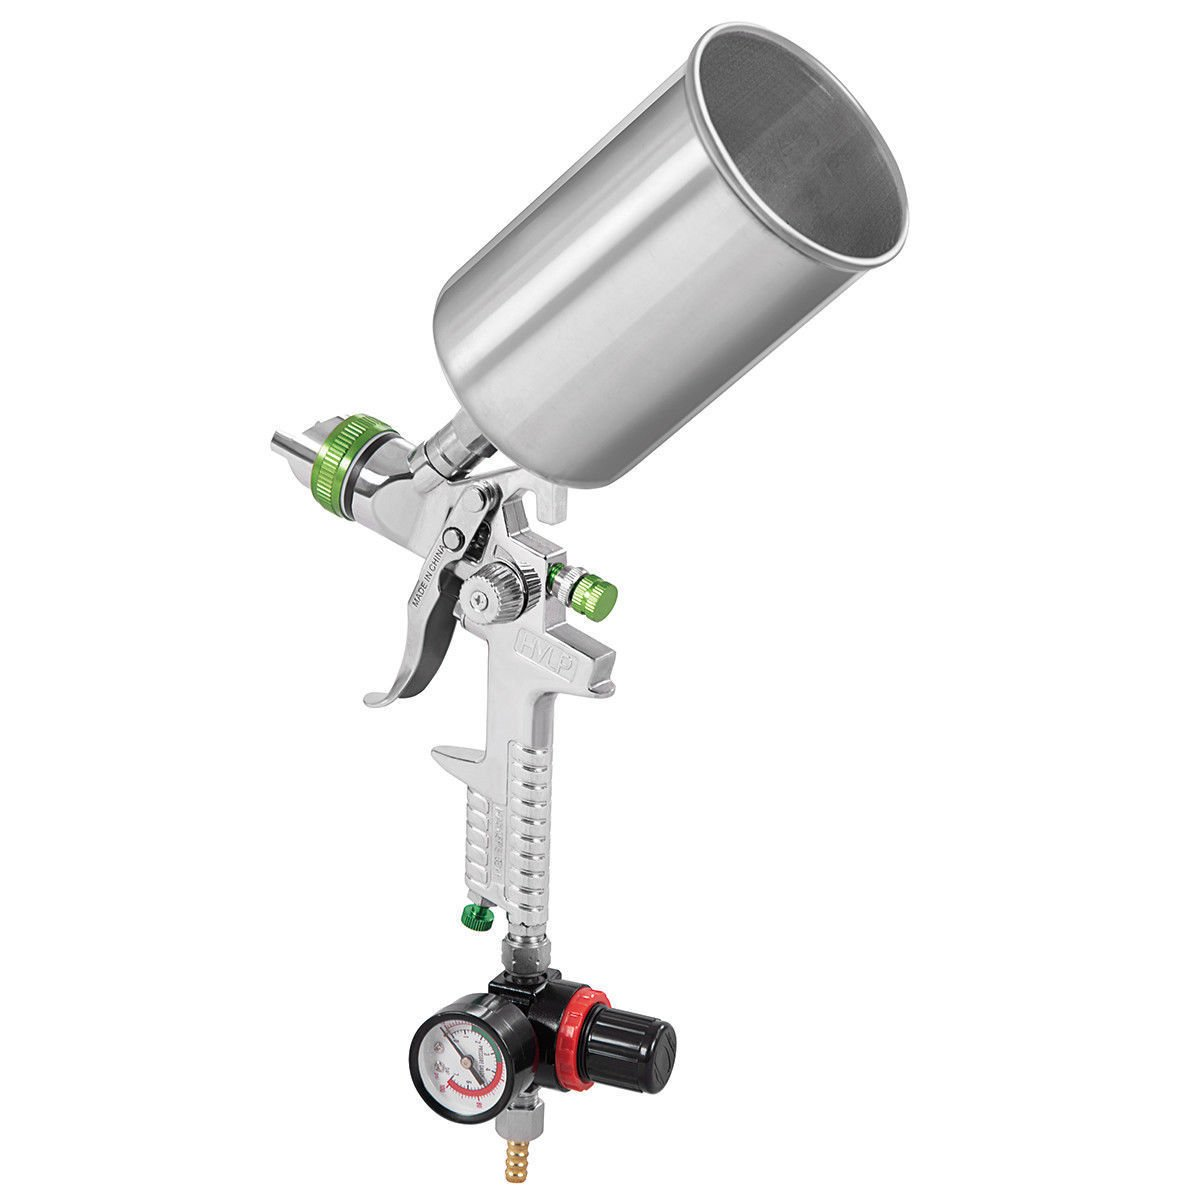 Goplus HVLP Gravity Feed Spray Paint Gun Kit 2.5mm Nozzle Size Aluminum Cup W/ Air Regulator